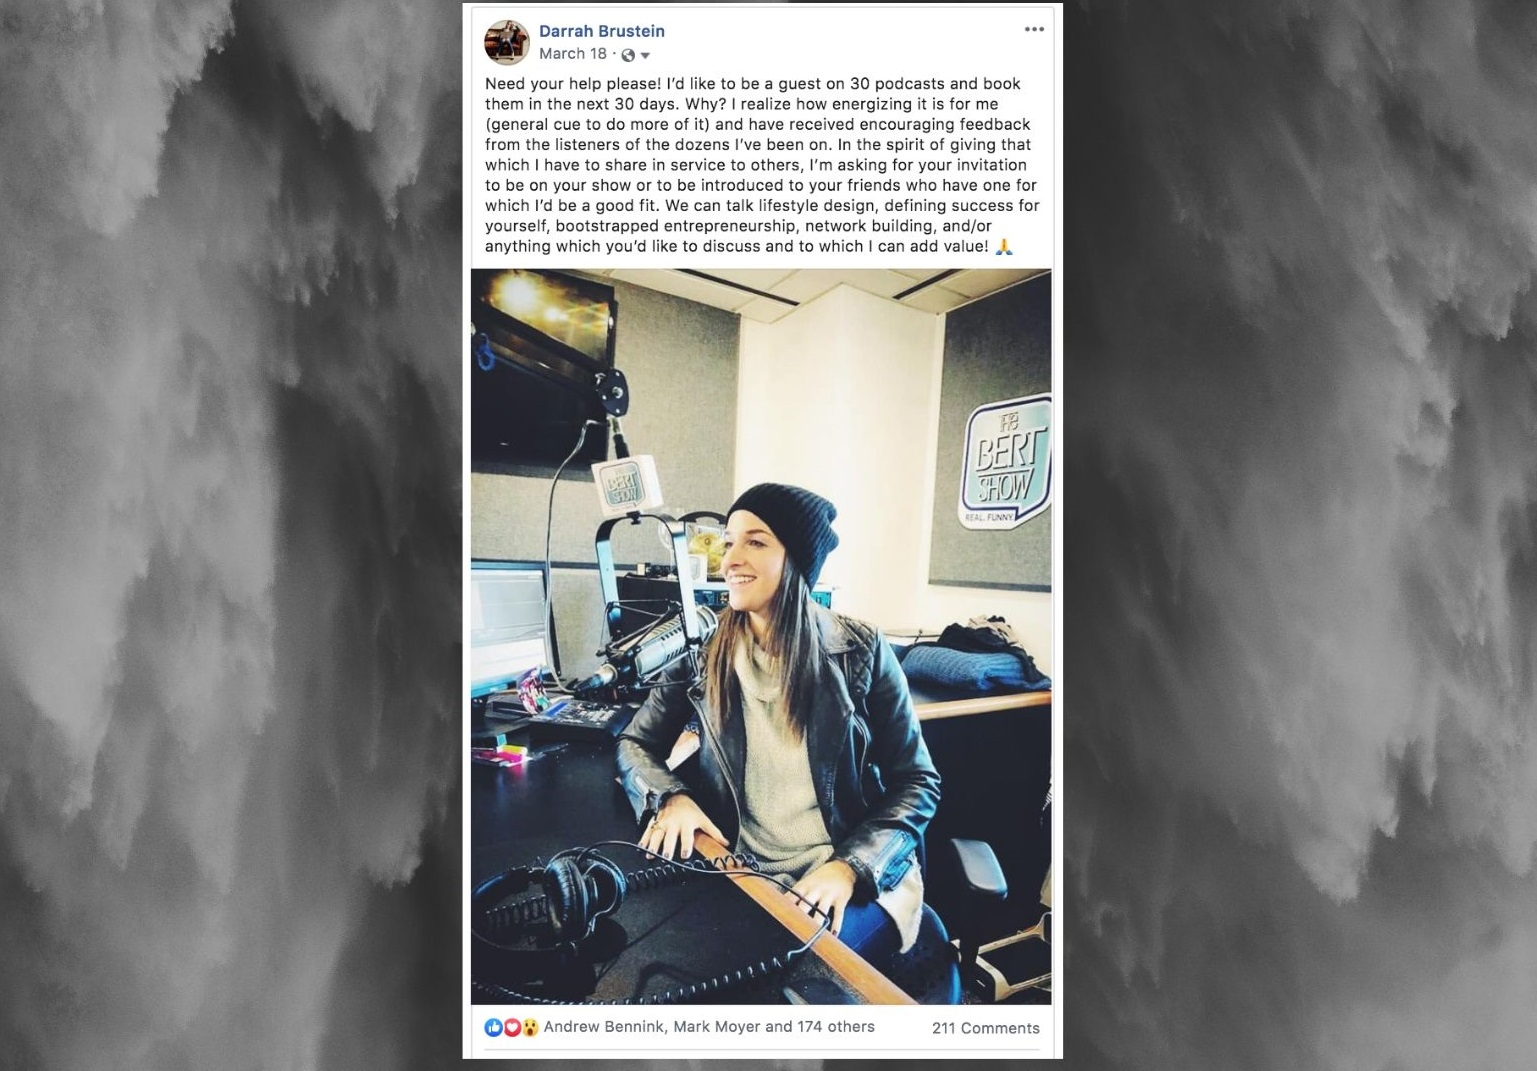 My Post on Social Media POST FOR PODCASTS